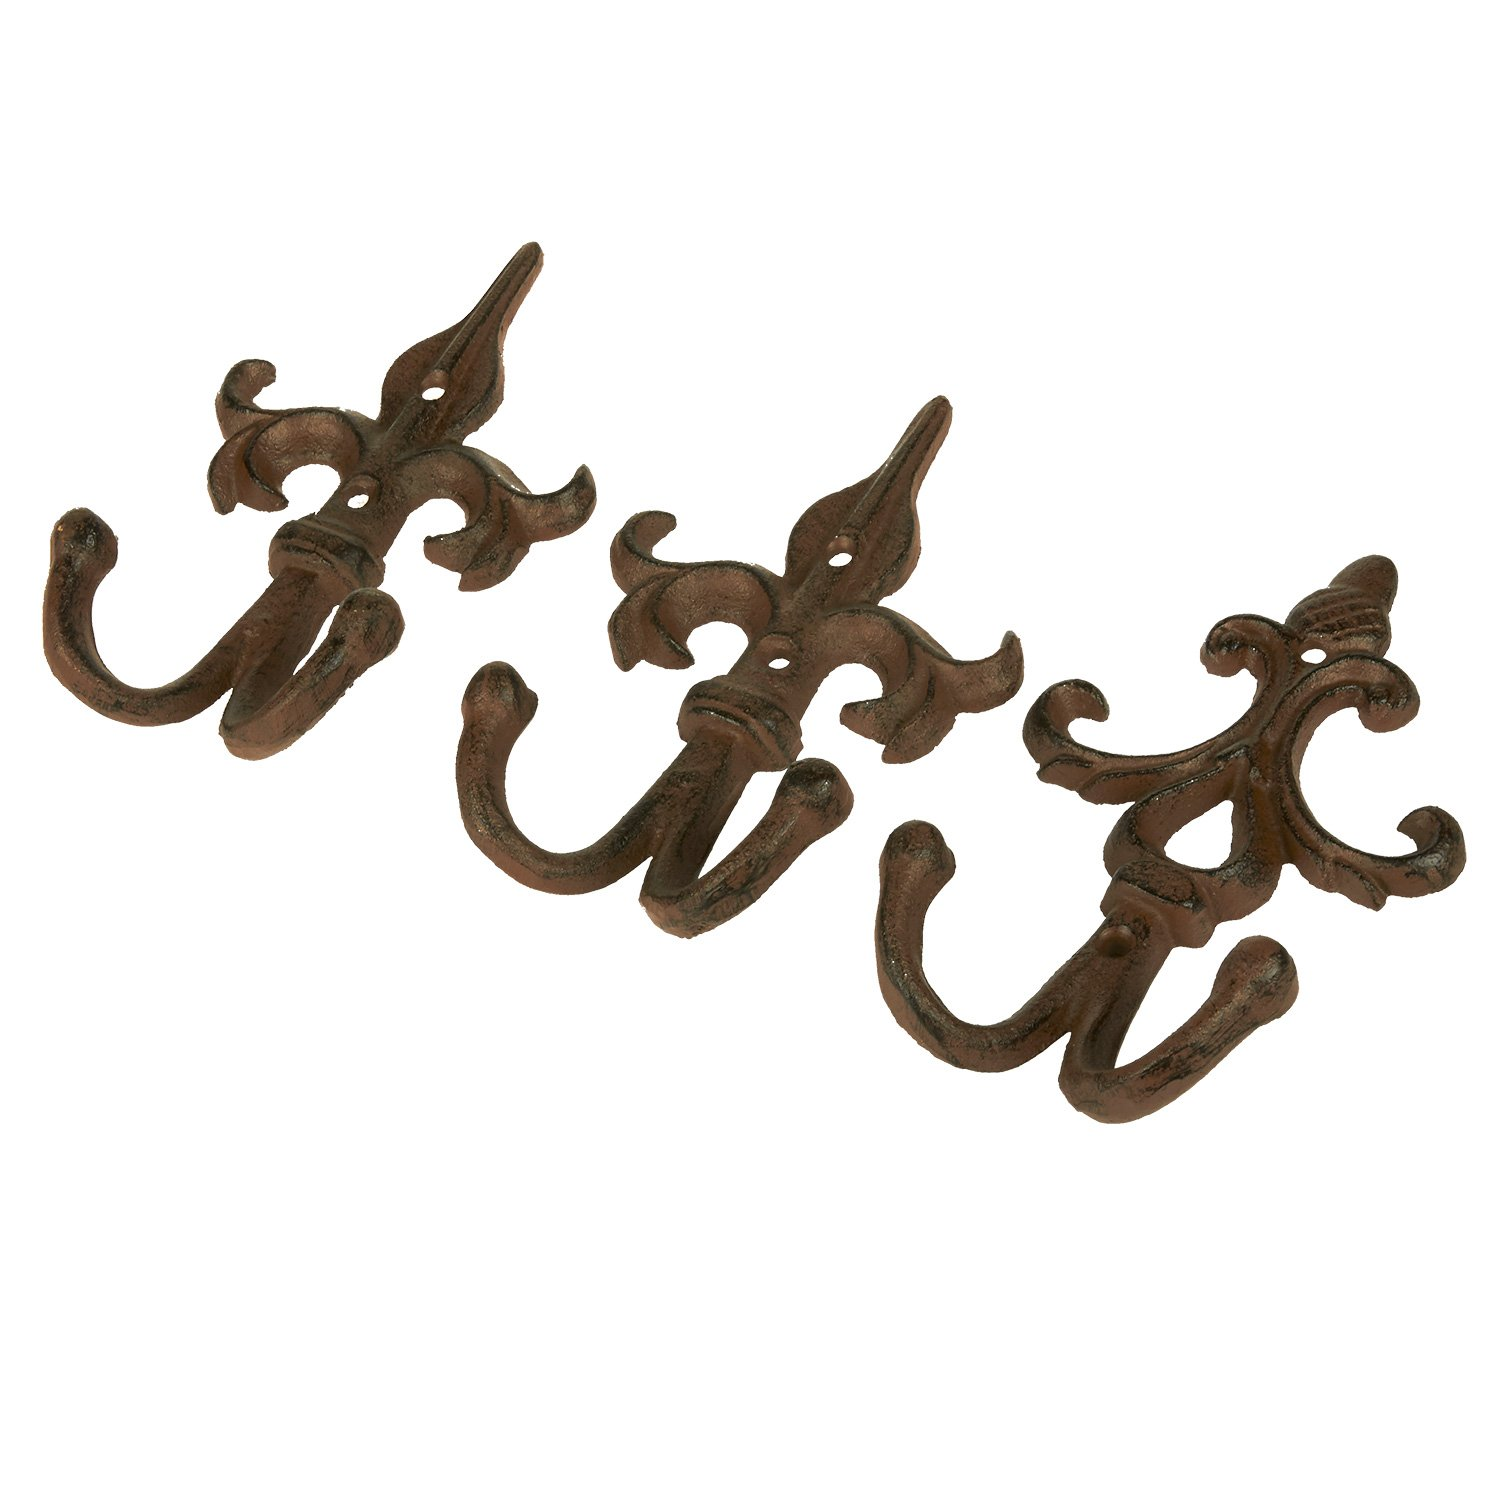 Juvale Shabby Chic Ornate Iron Hook - Classic Wall Mounted Hook for Coat, Hat, Scarf - Set of 3